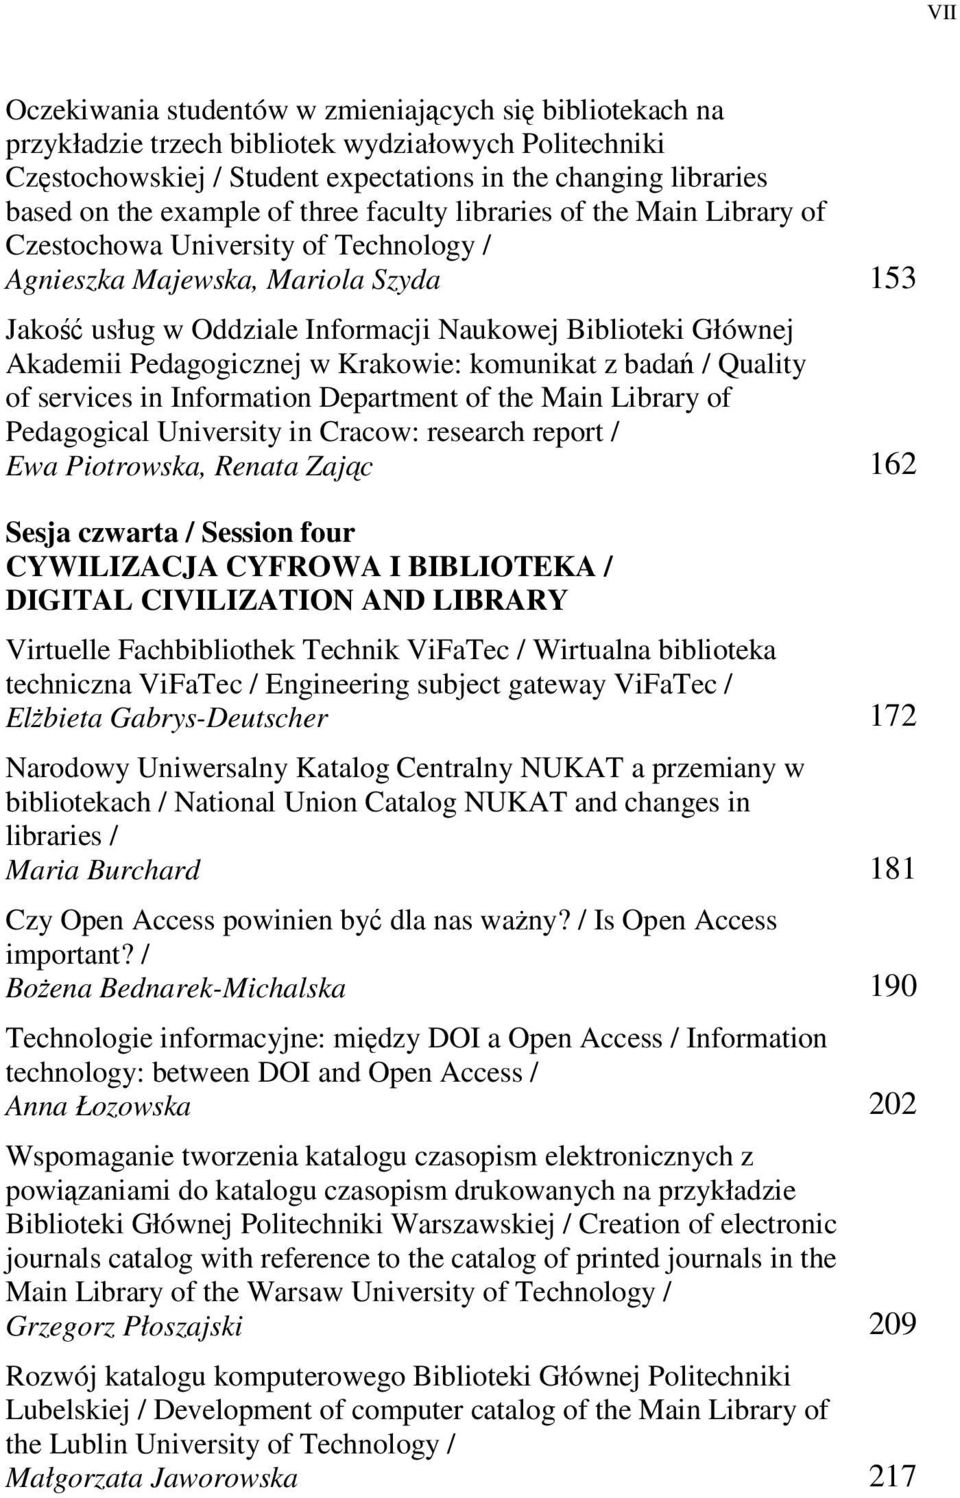 Pedagogicznej w Krakowie: komunikat z bada / Quality of services in Information Department of the Main Library of Pedagogical University in Cracow: research report / Ewa Piotrowska, Renata Zajc 162